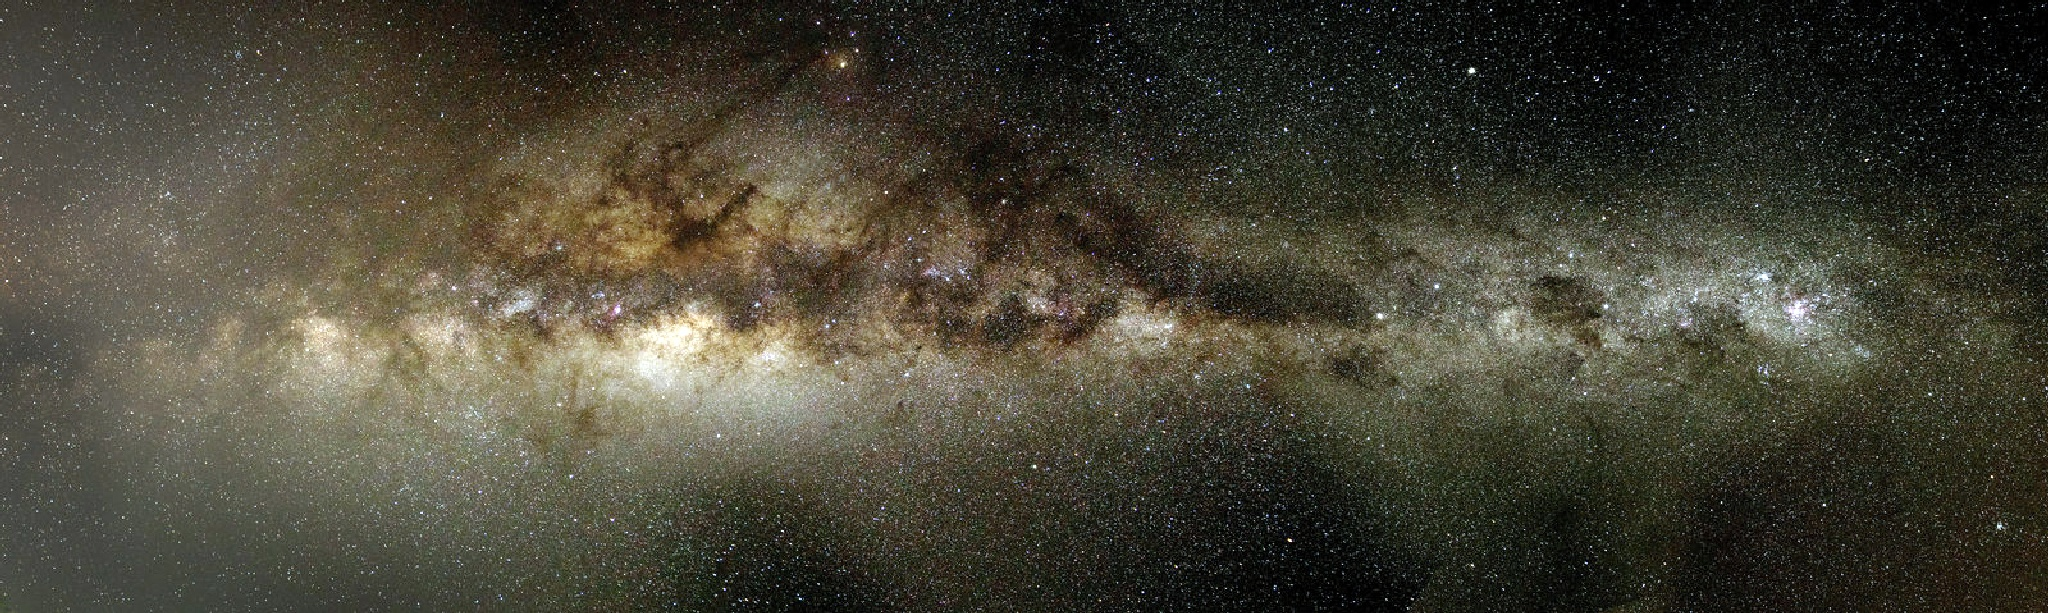 Milky way from the Southern Hemisphere by Graham Levi